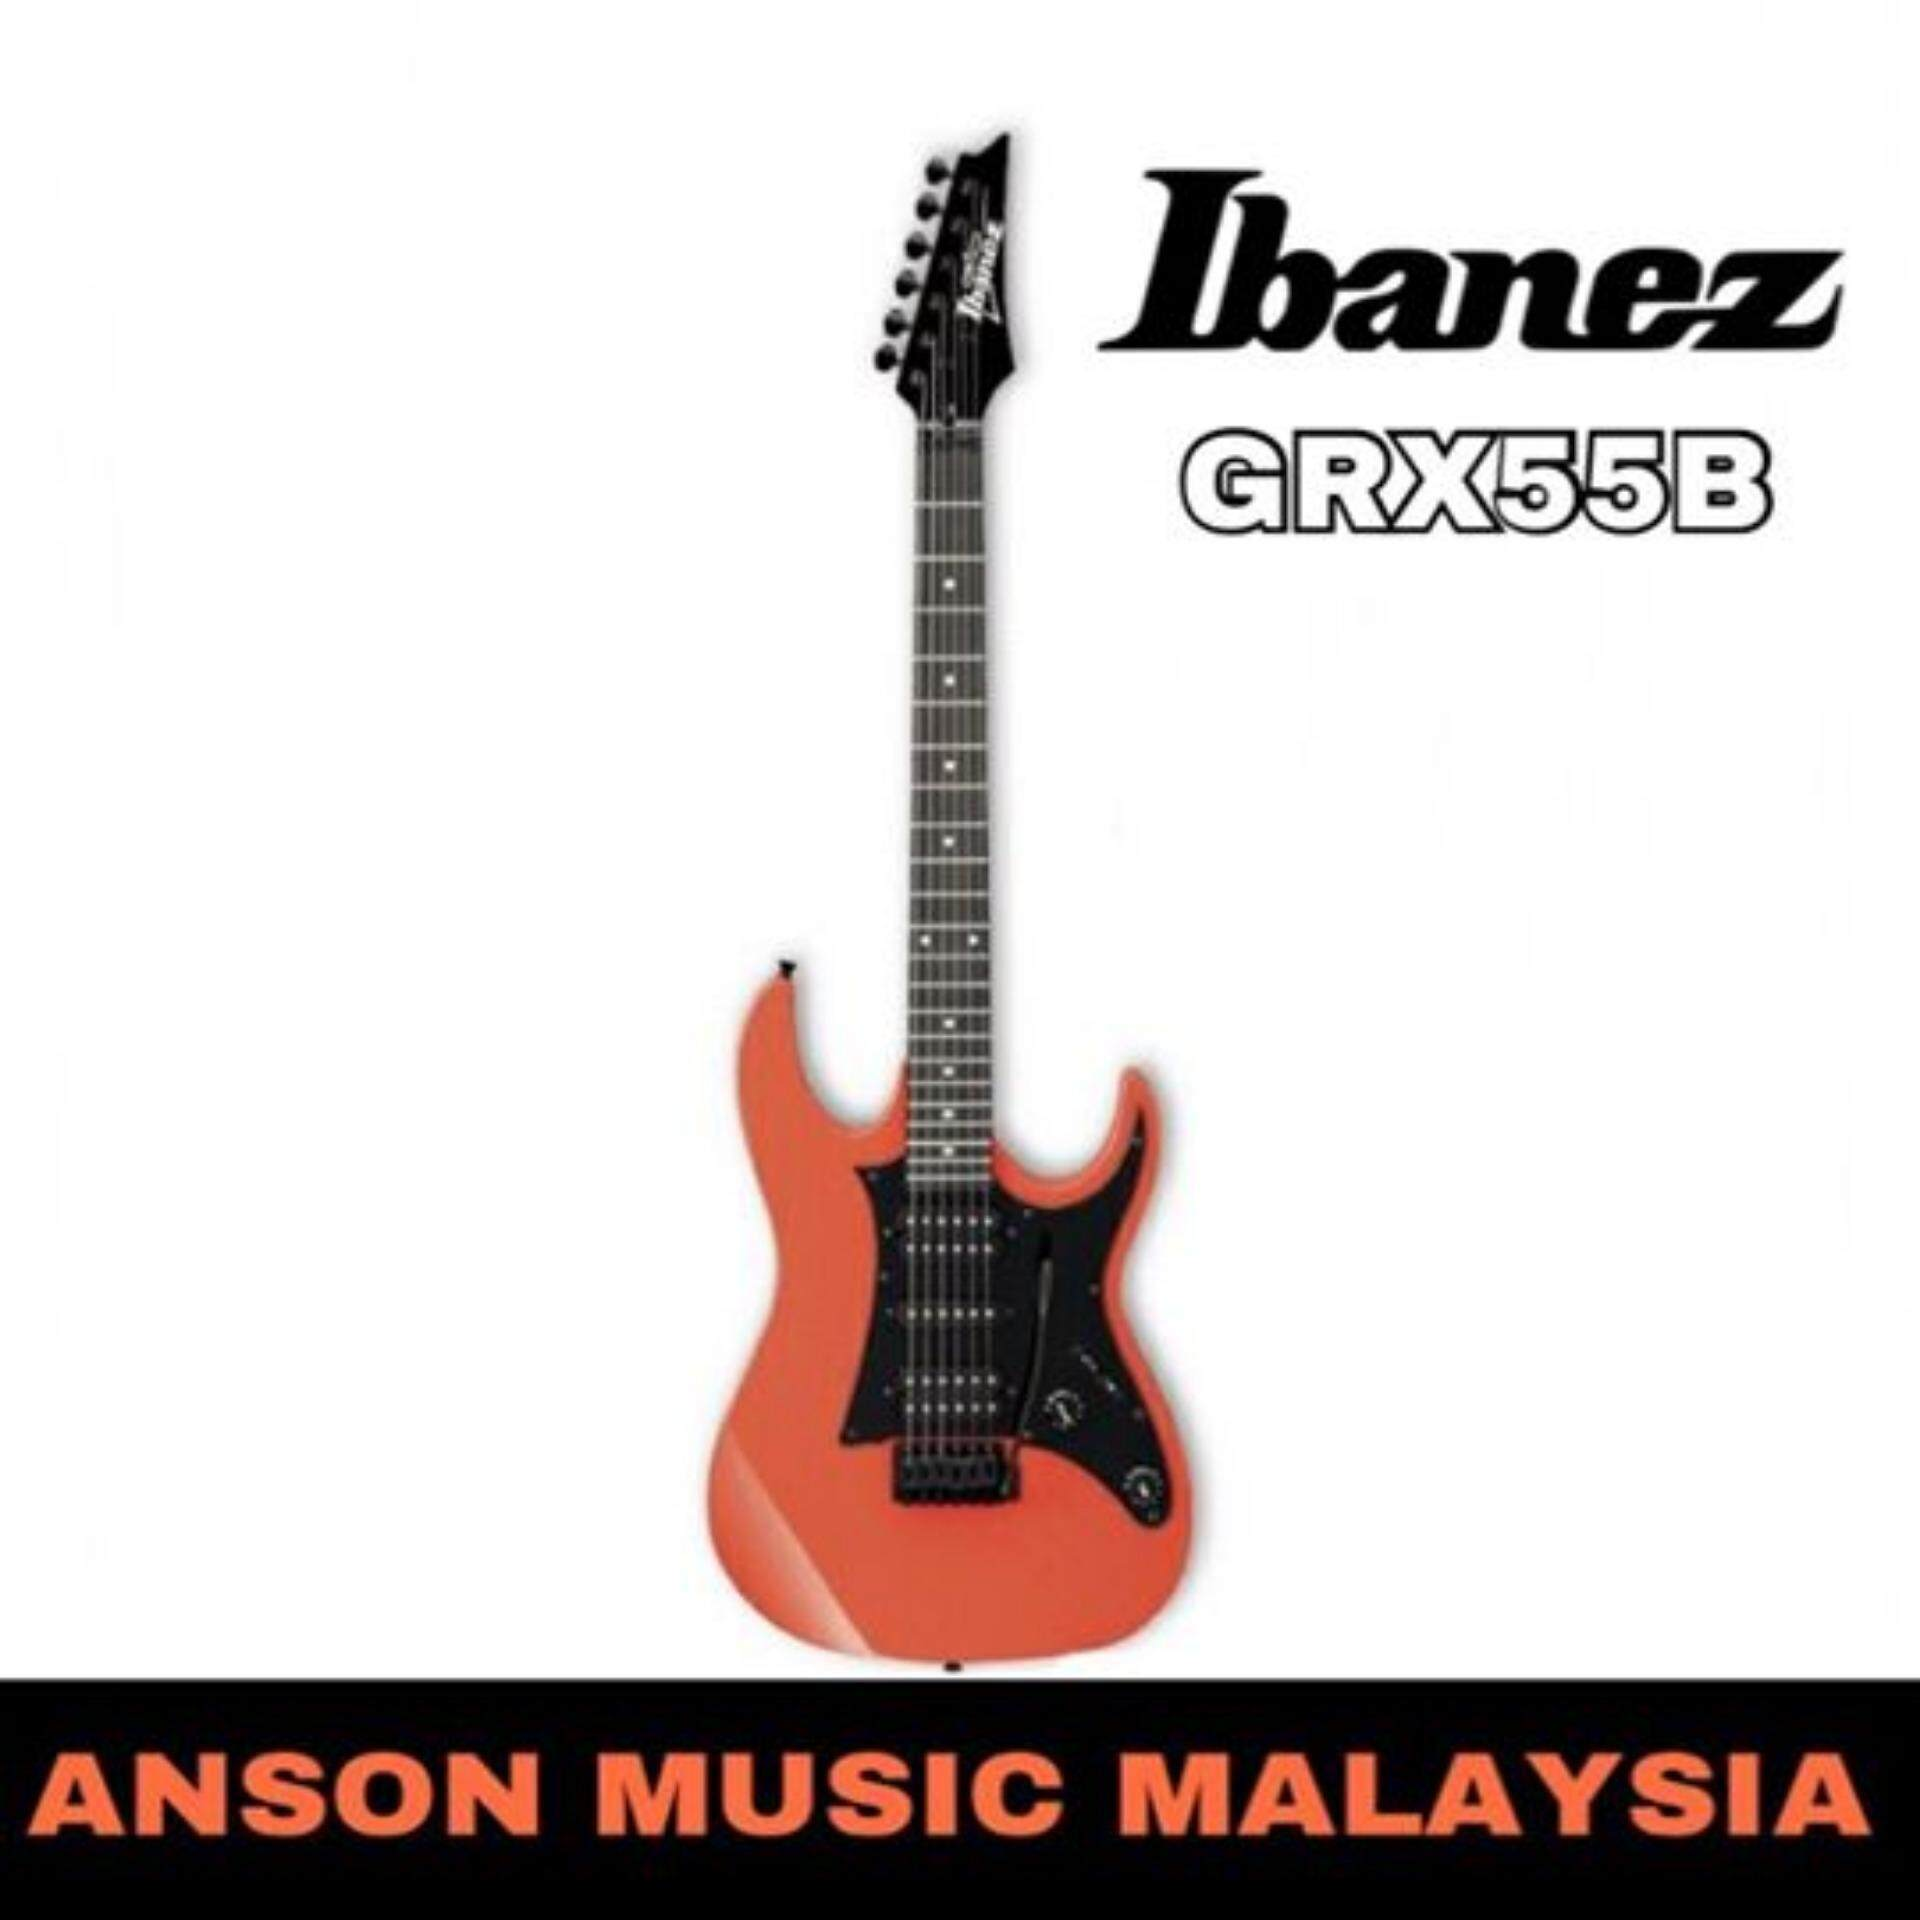 Ibanez S520 Wiring Diagram Detailed Schematic Diagrams Bass Guitar Famous Ex Series Sdtv Remote Ge Motor